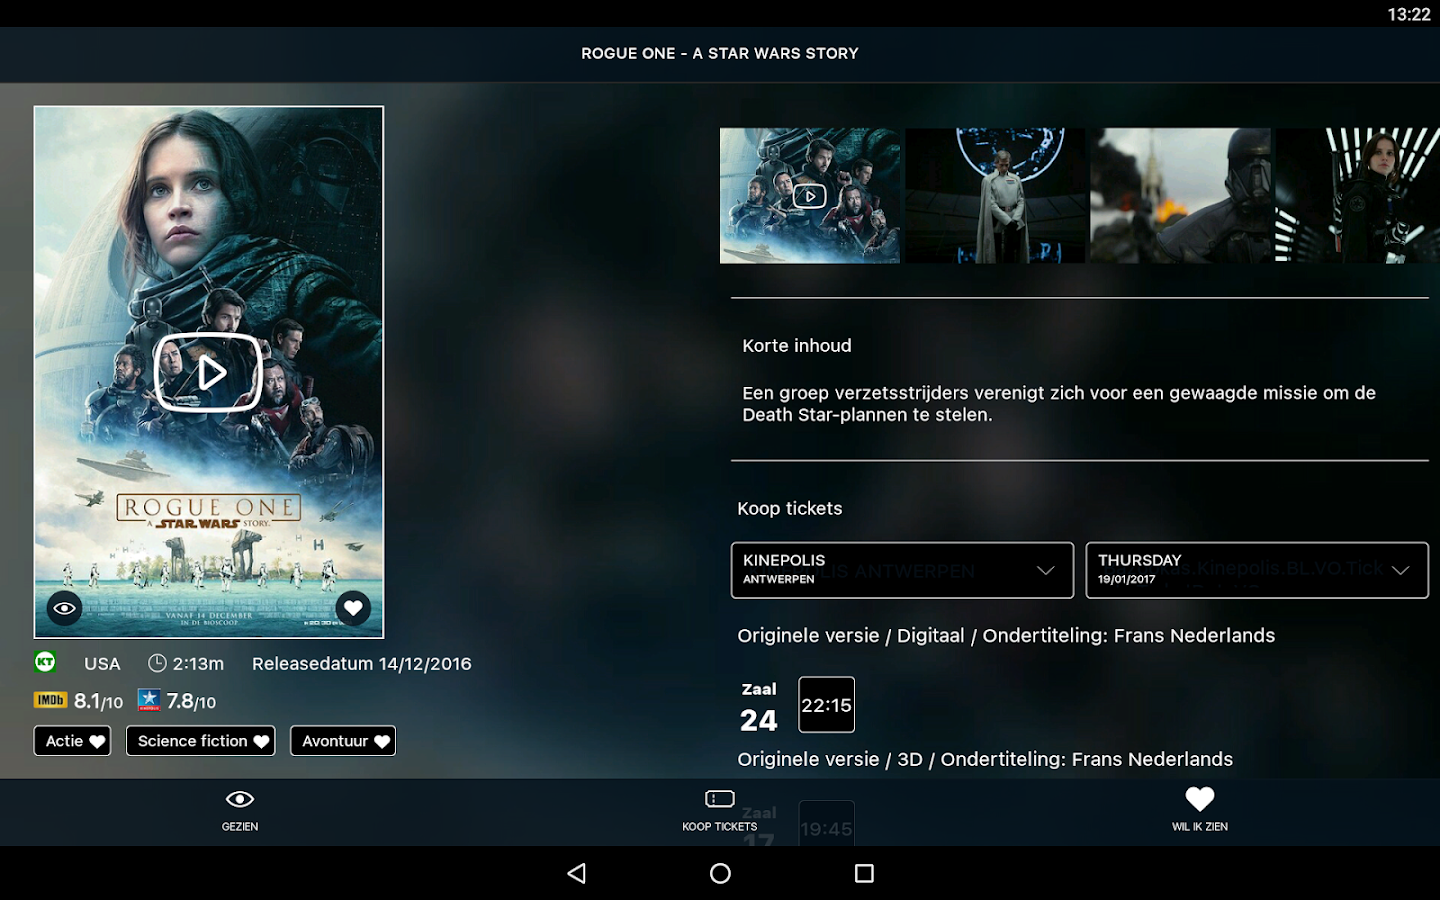 Kinepolis: screenshot